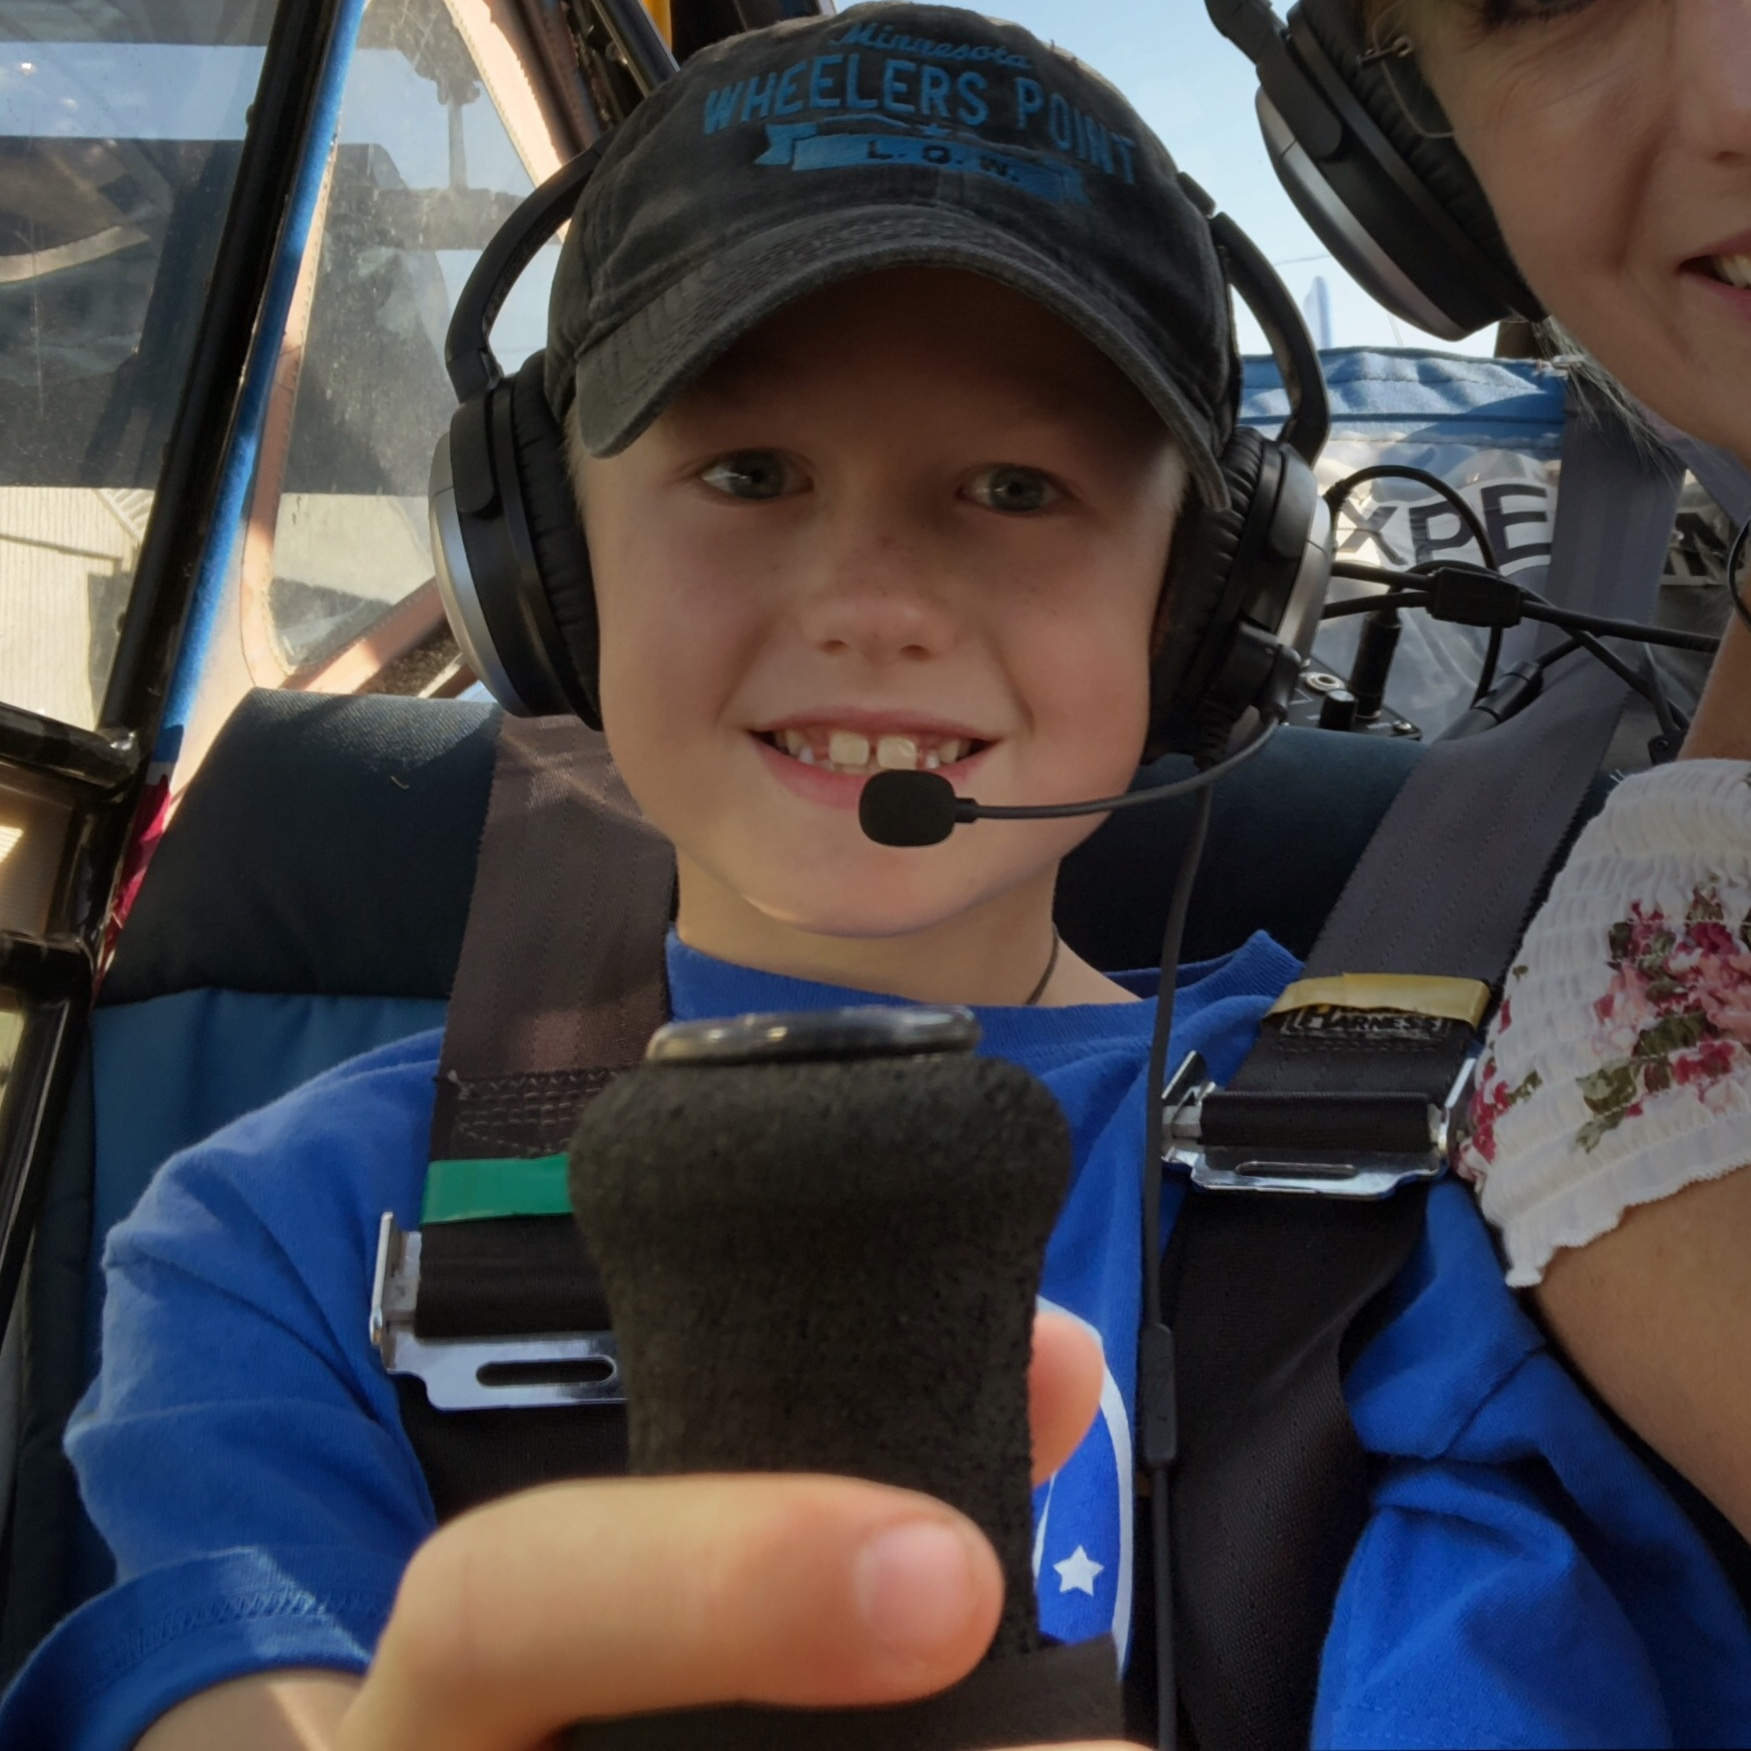 Sign up at the Fly-In for your Young Eagles Flight (free, held Aug. 19th) .  It's an experience of a lifetime, and can launch you right into getting your own pilot's license. We'll show you how, and give you the tools to get started! Over 17? The Eagles Program is the same thing with great extras! We'll explain everything and even point you towards scholarships and funding. Relax, we'll help you along as you spread your wings and FLY!